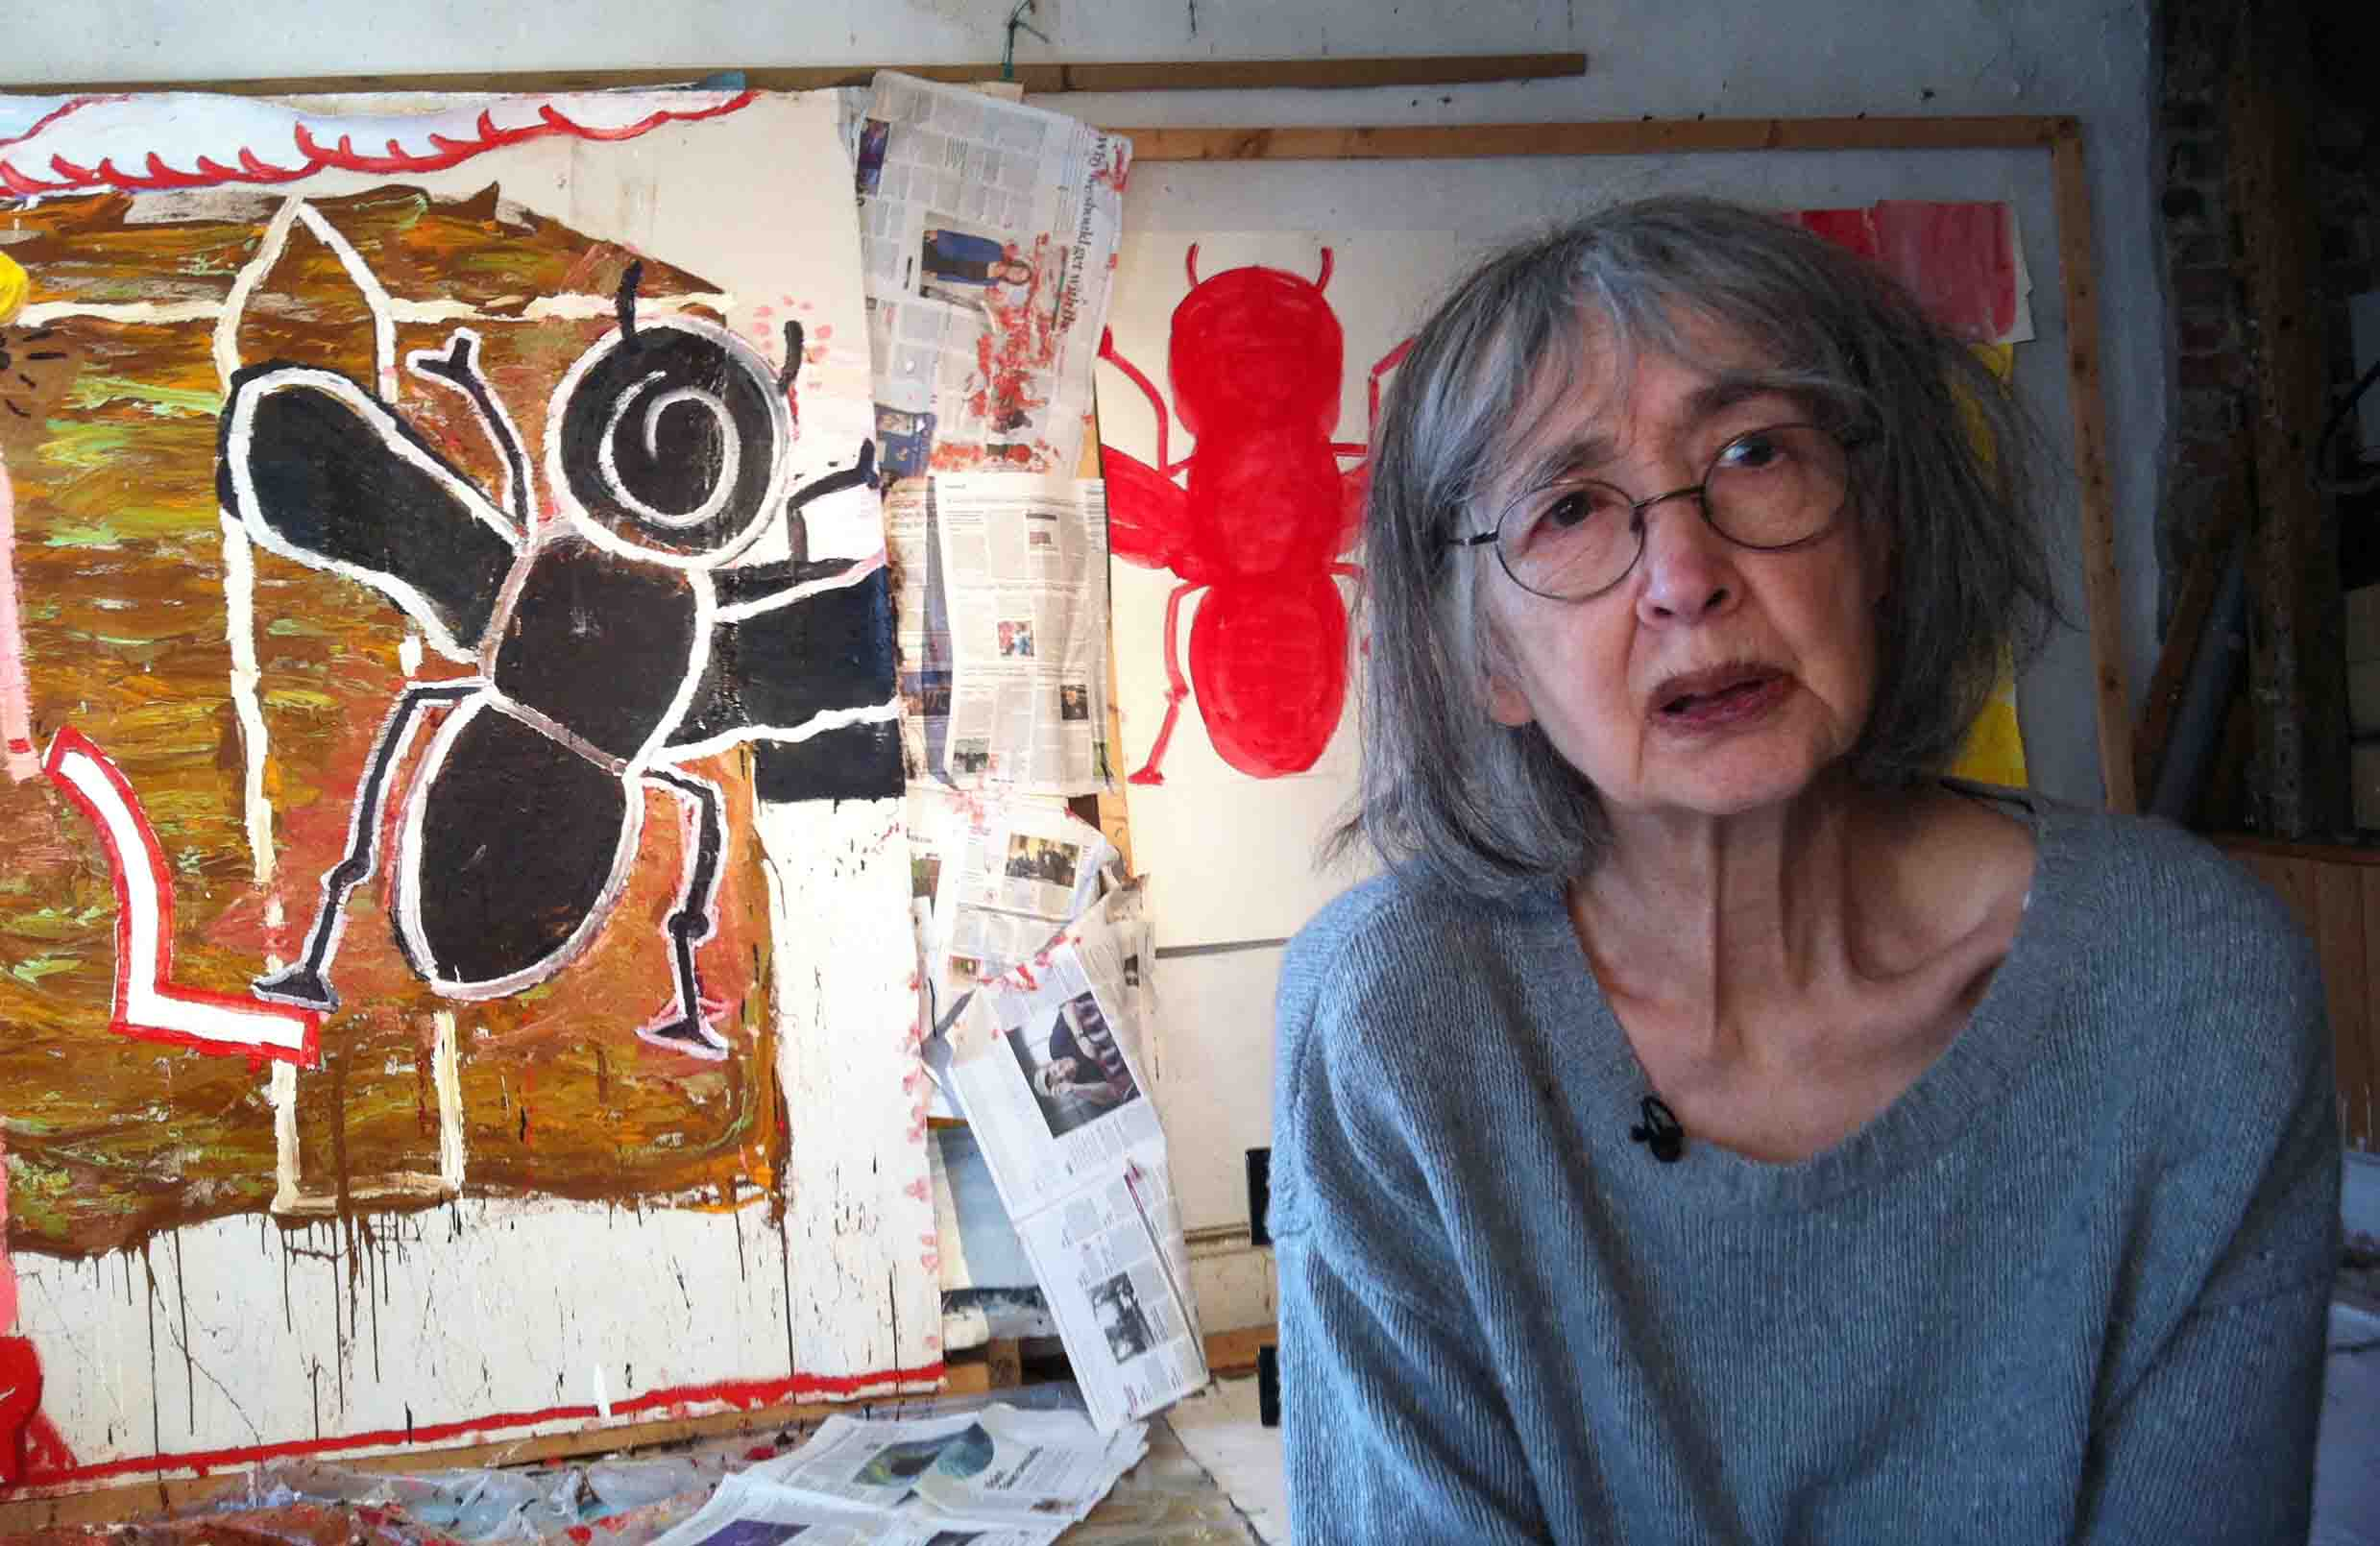 Artist Rose Wylie at her studio in Kent. By permission of Channel 4 News.